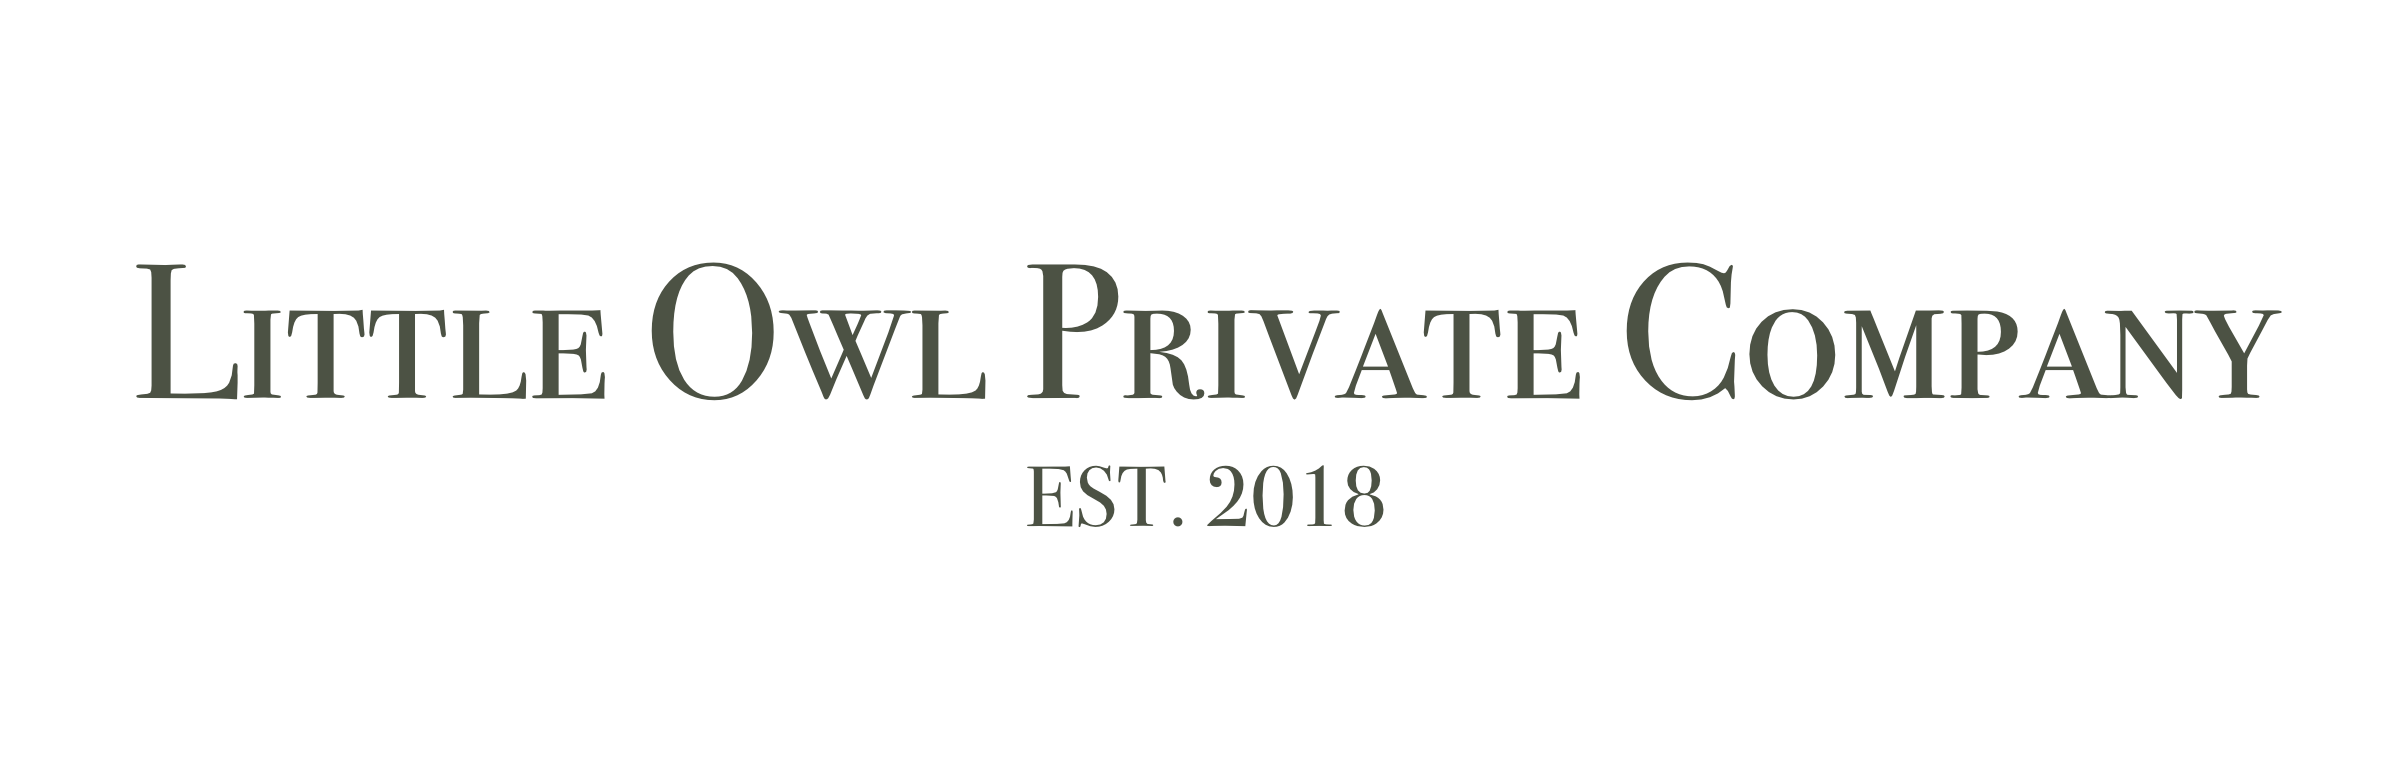 Little Owl Private Company